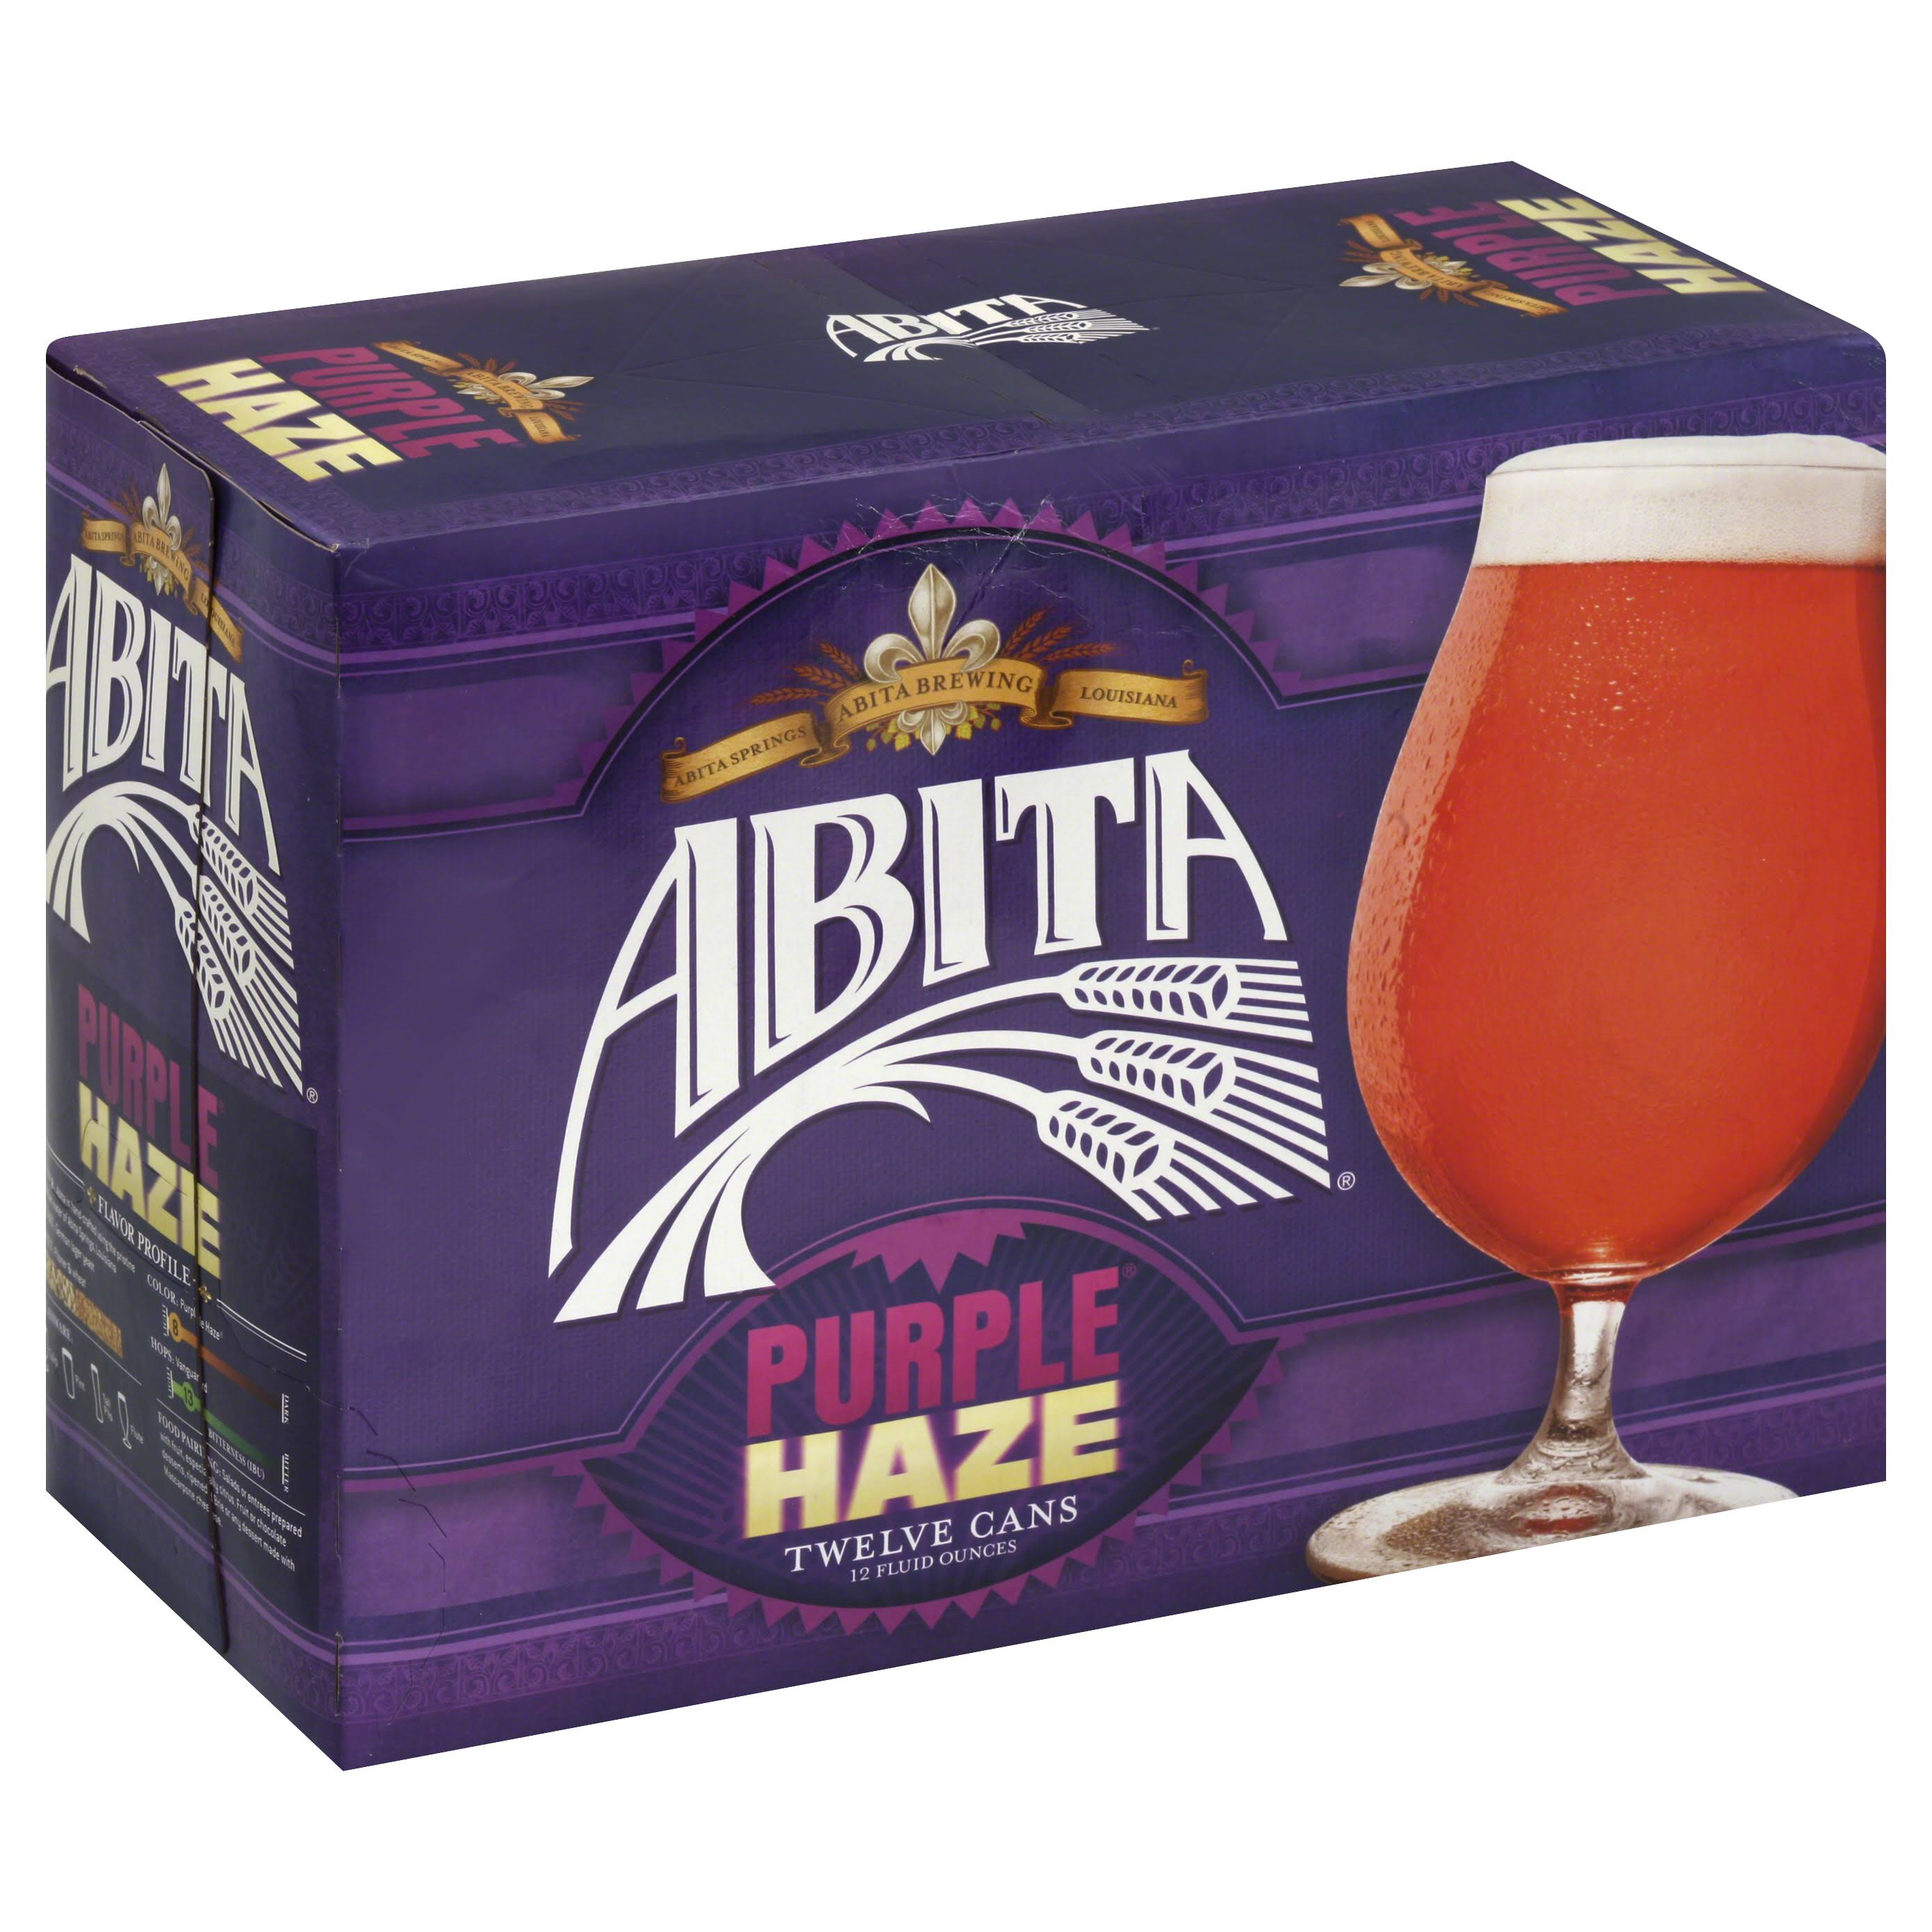 Abita Purple Haze Beer - 12 x 12 oz Pack